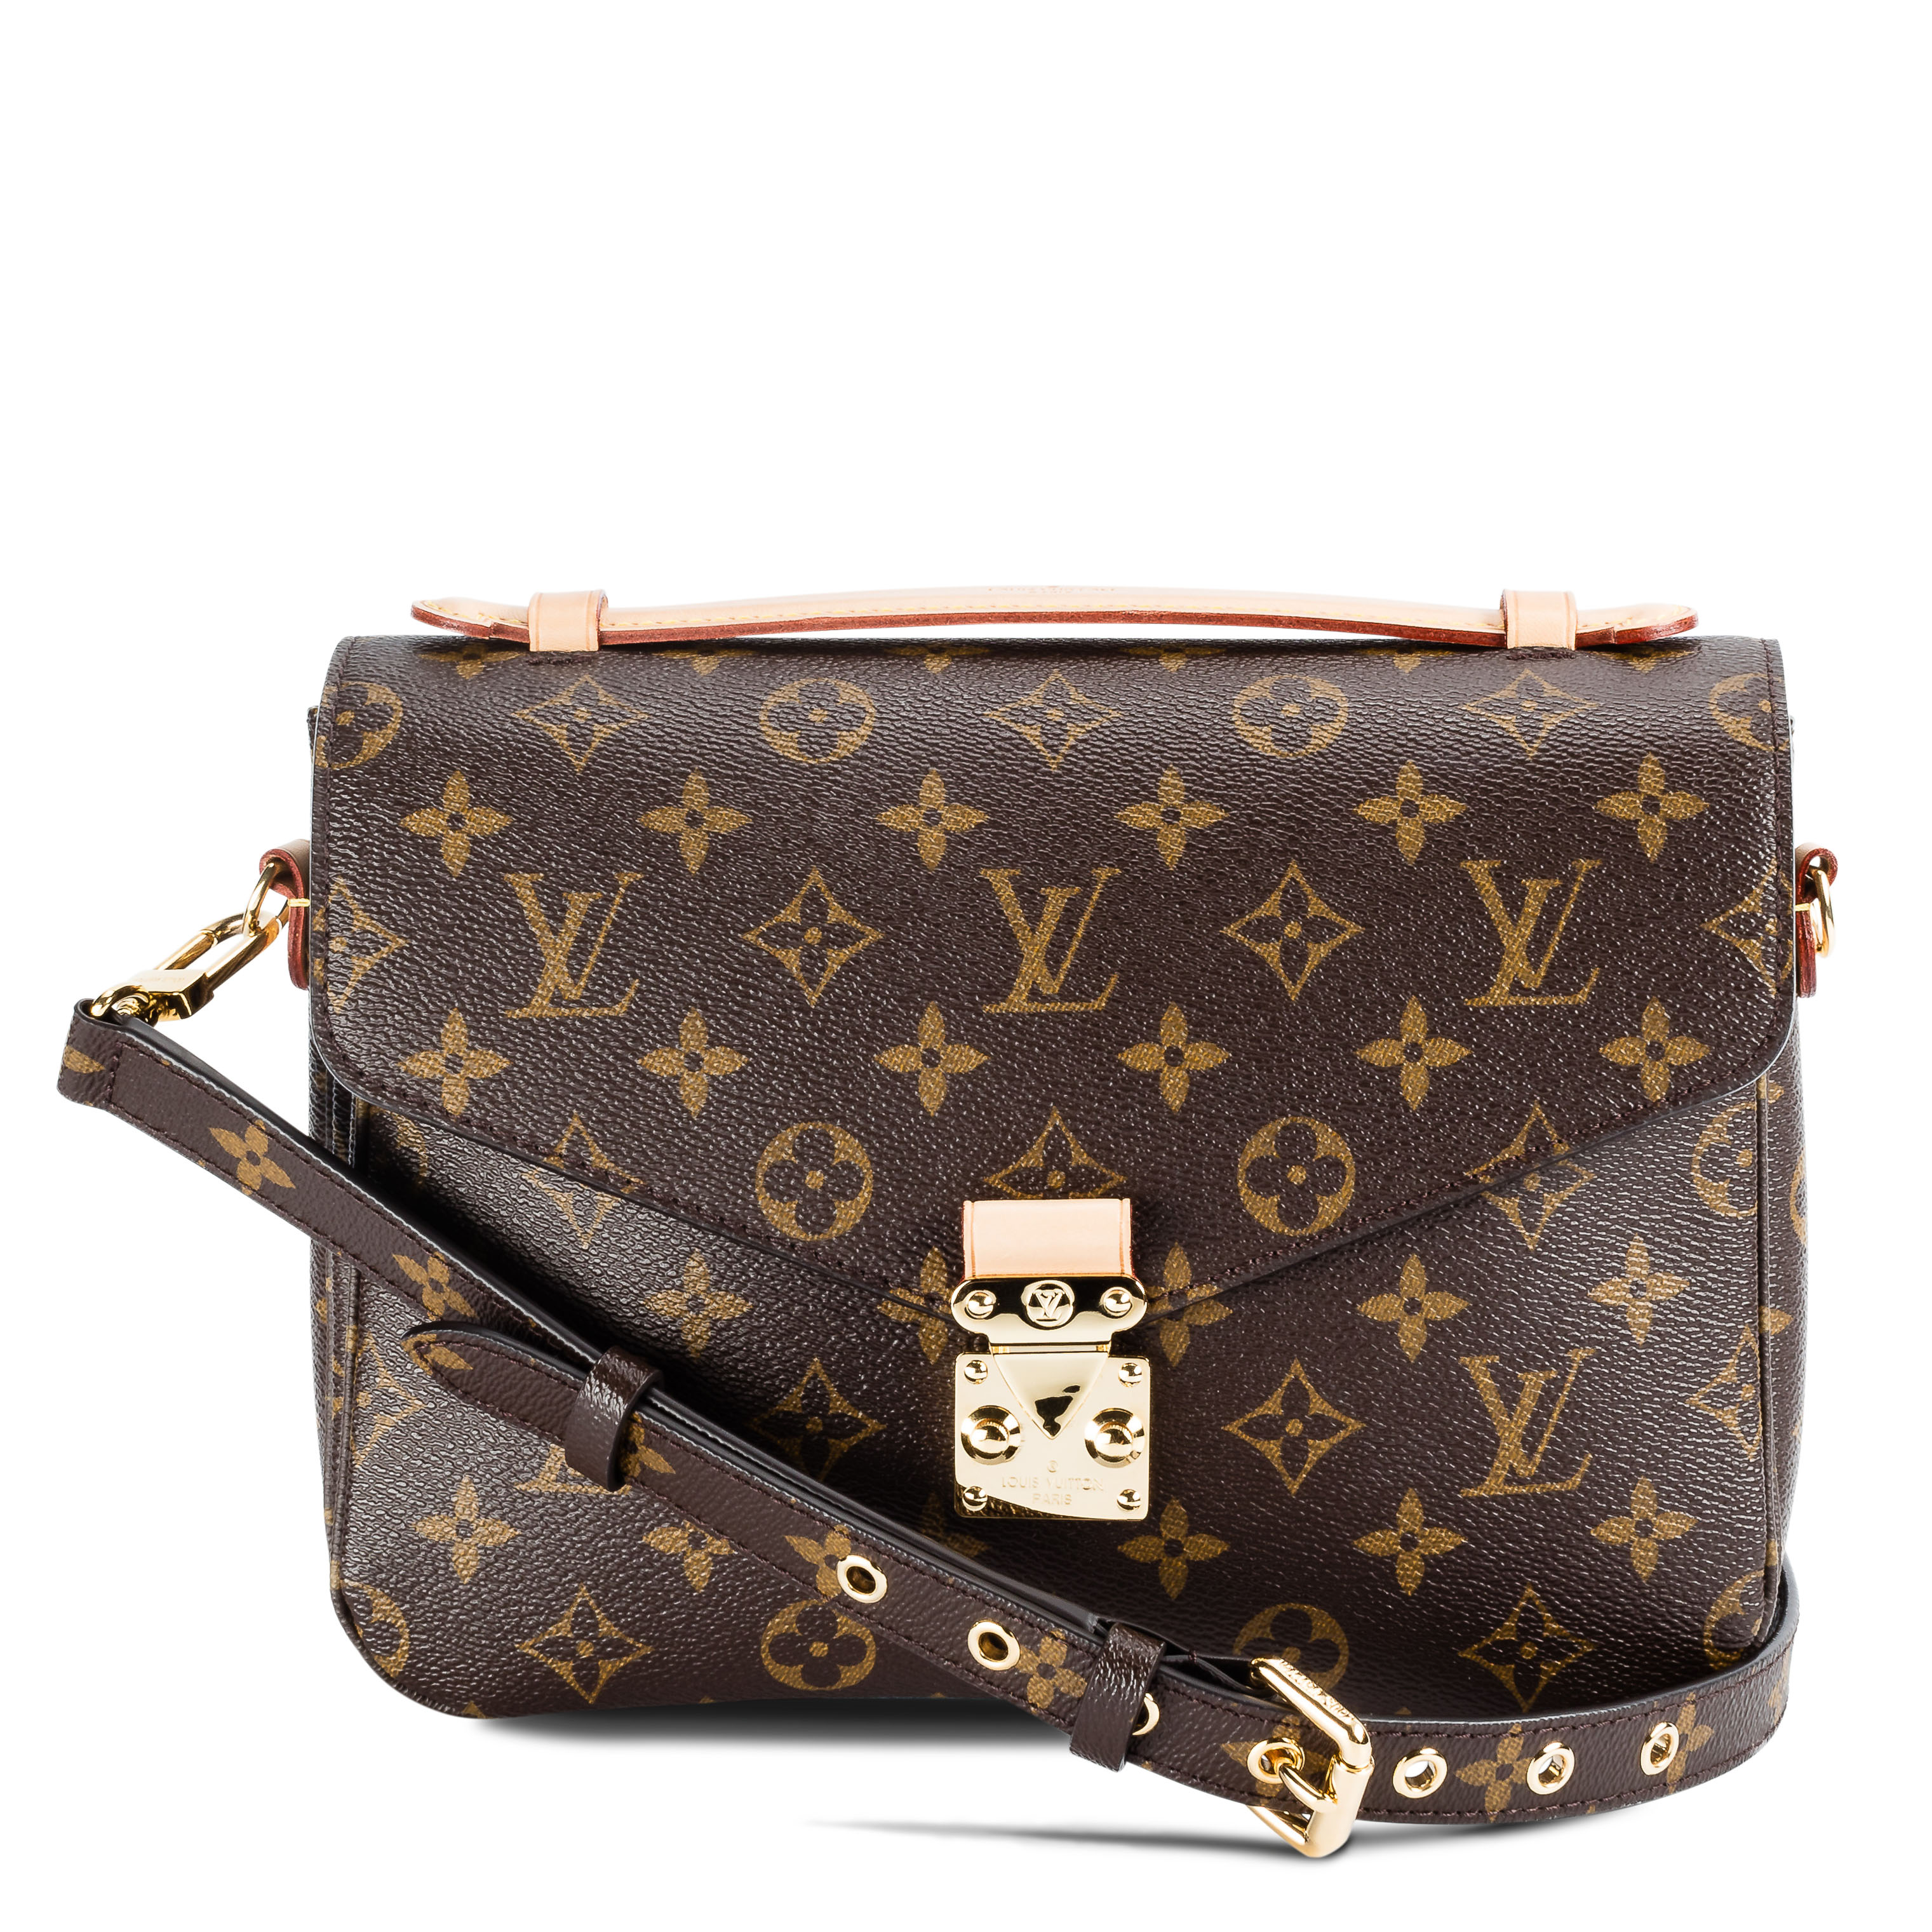 louis Vuitton metis rentyourluxury